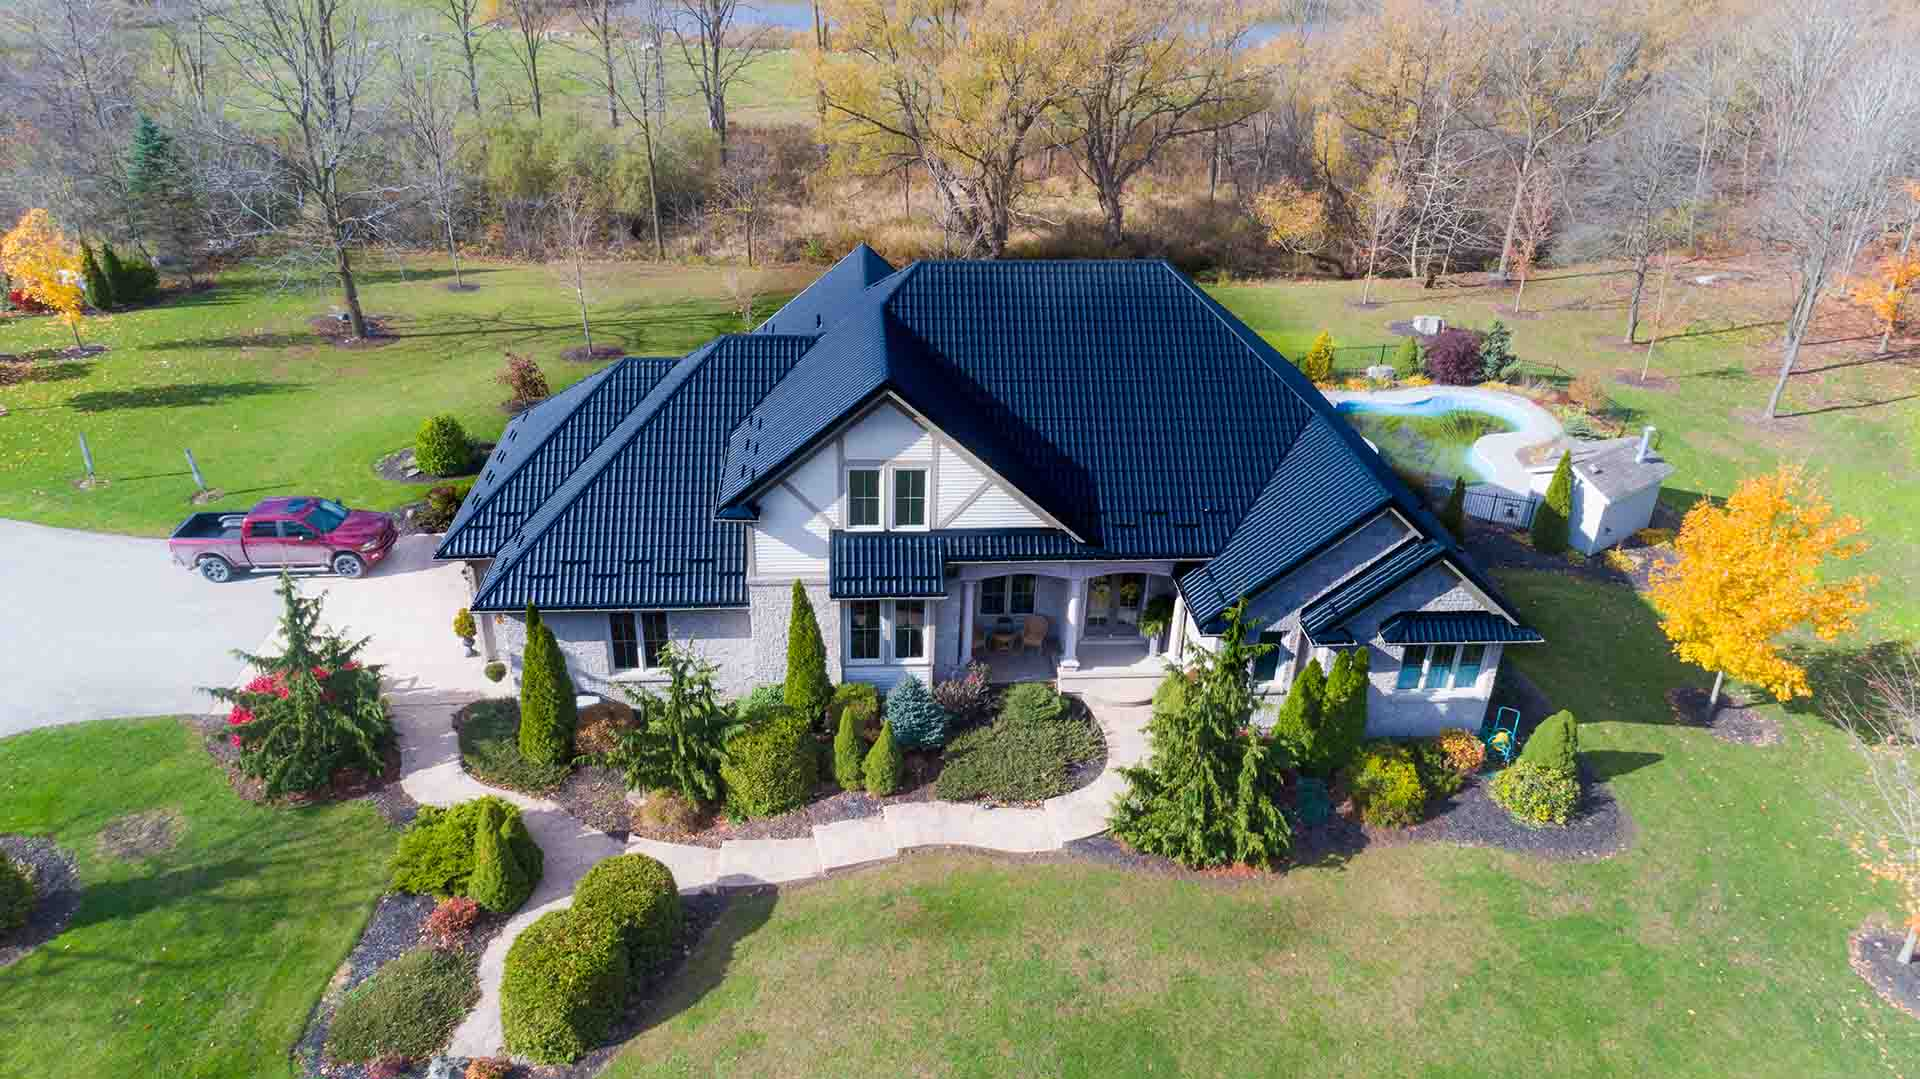 What are the 5 most common types of roofing?